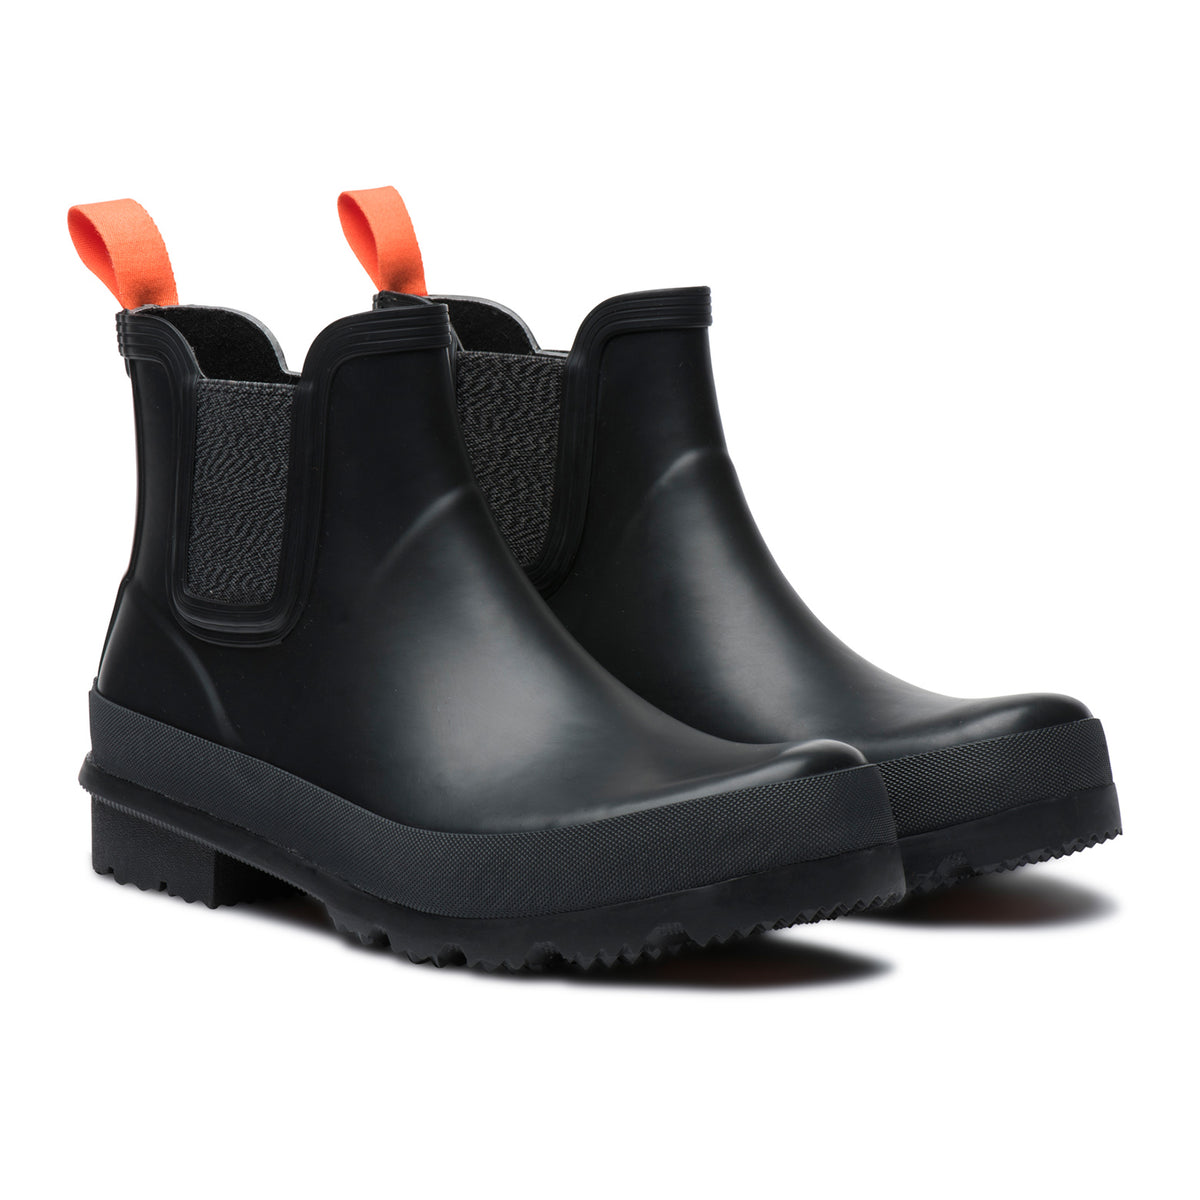 Charlie Rain Boot - background::white,variant::Black